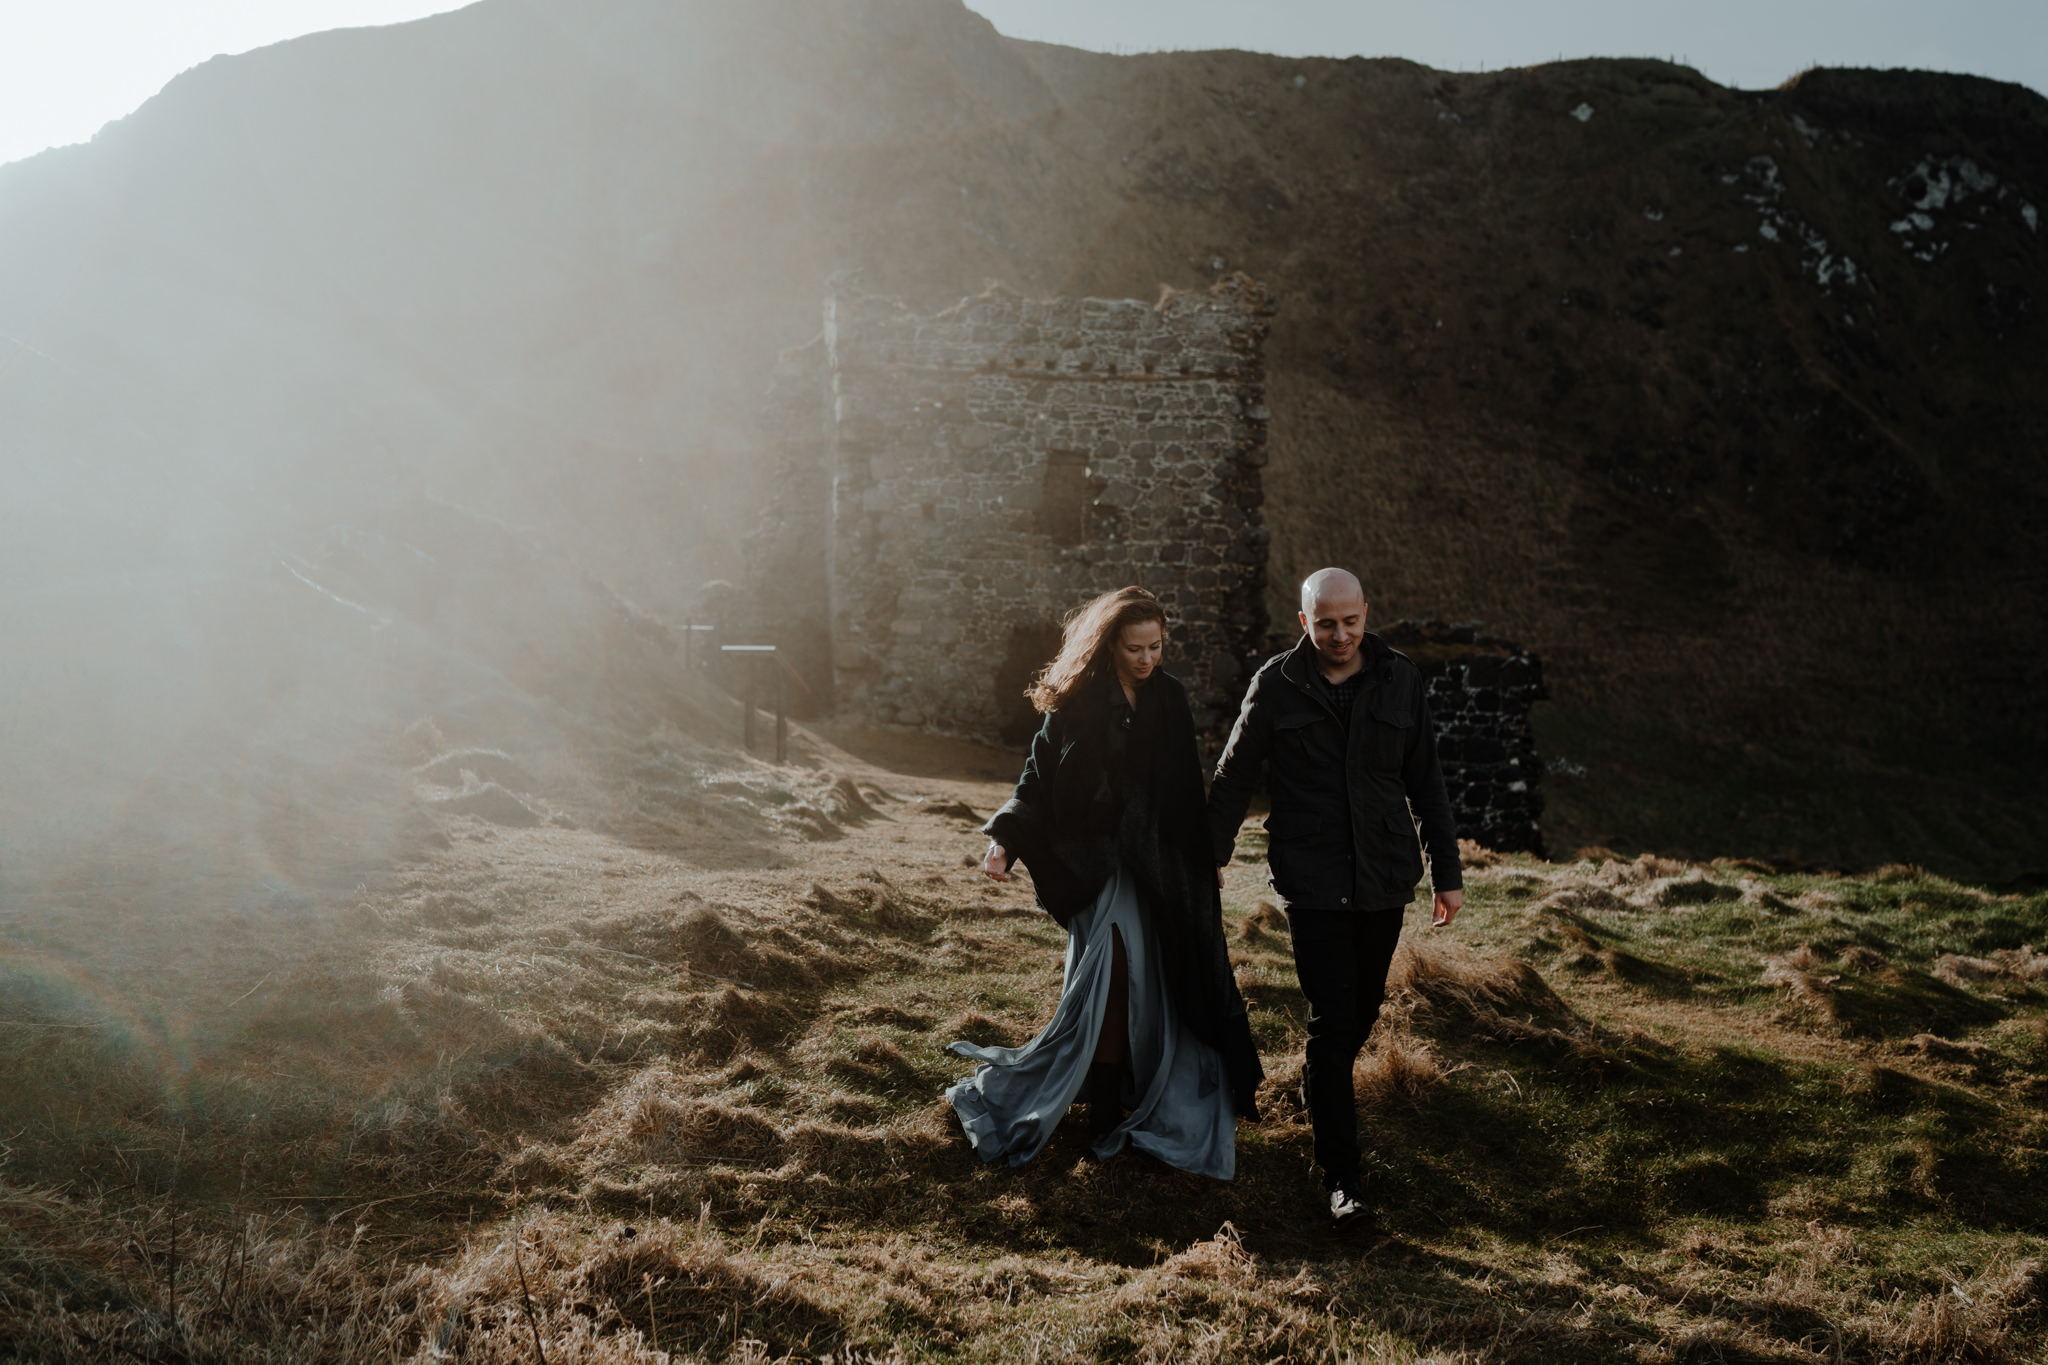 kinbane-castle-adventure-elopement-photographers-ireland-104.jpg